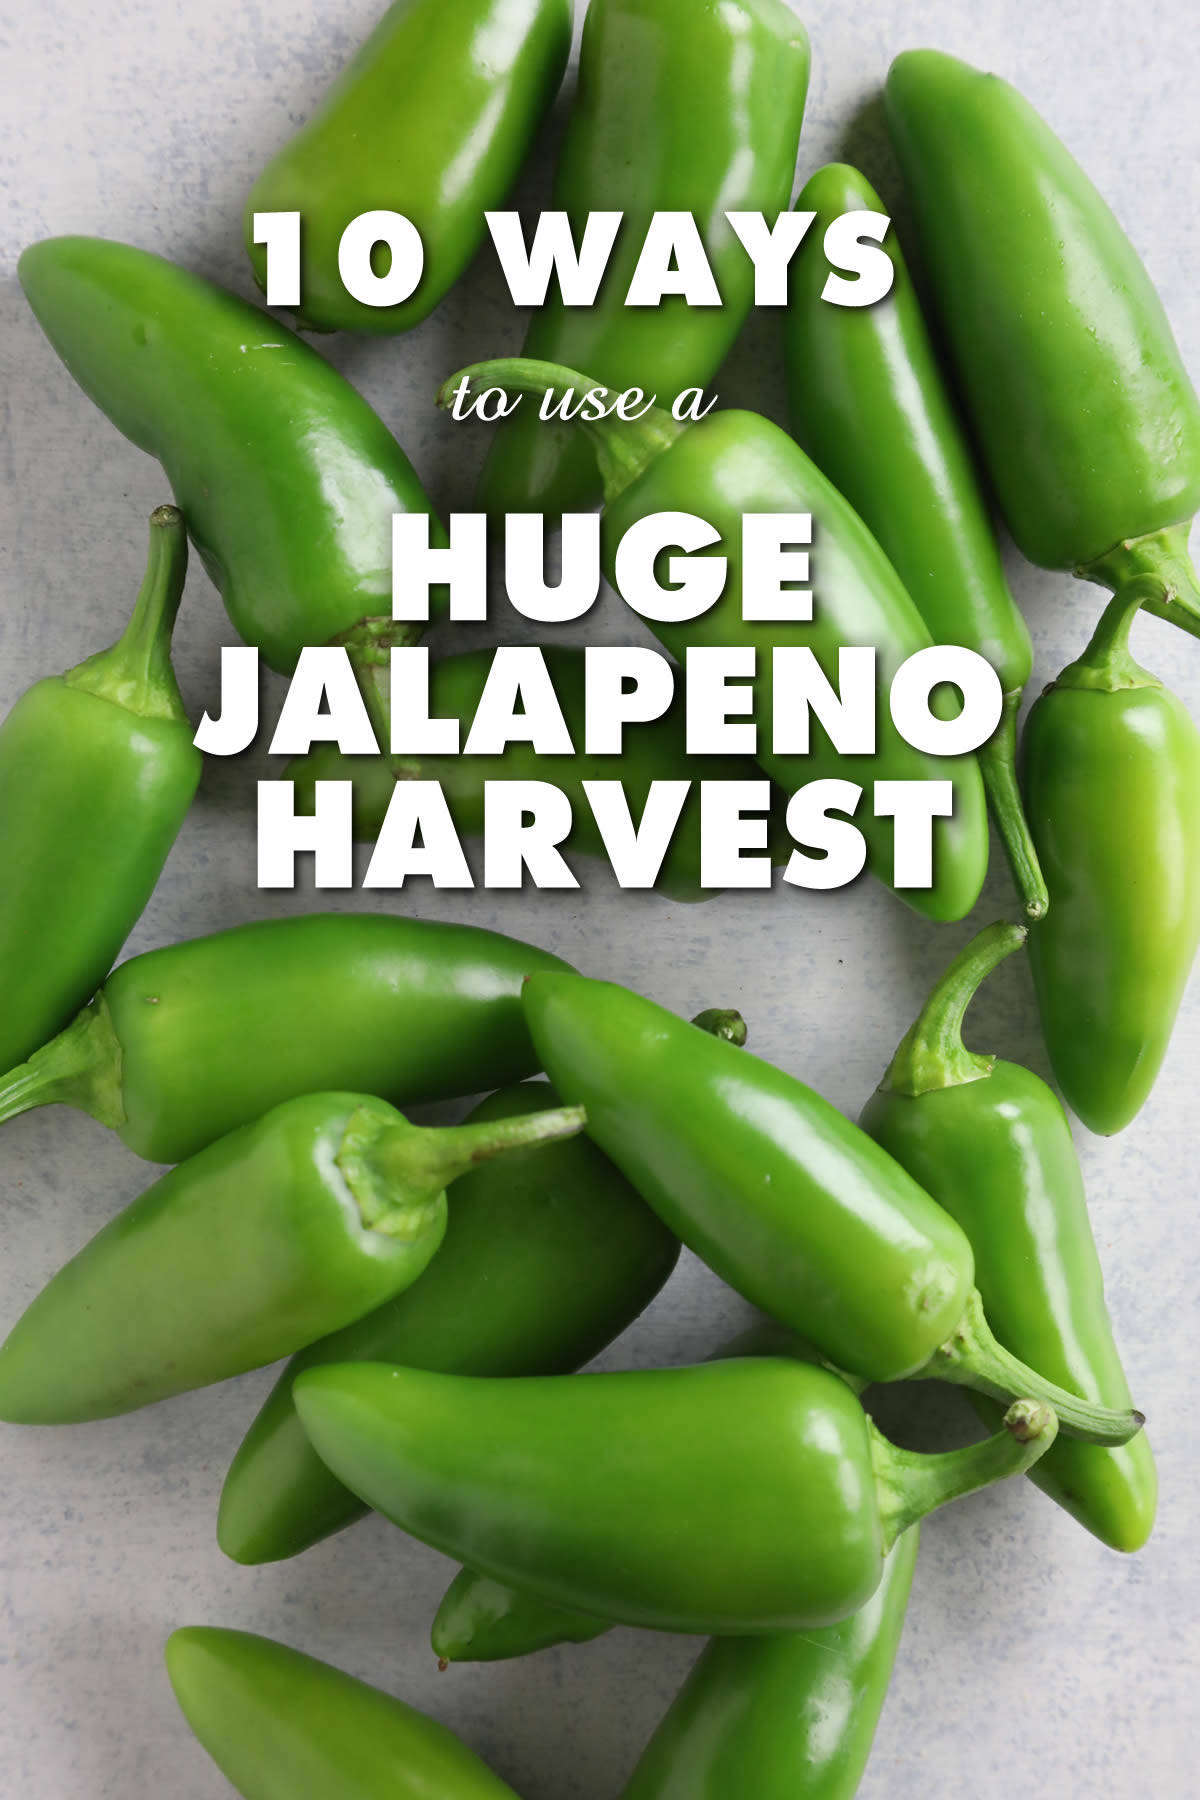 10 Ways to Use a Huge Jalapeno Pepper Harvest